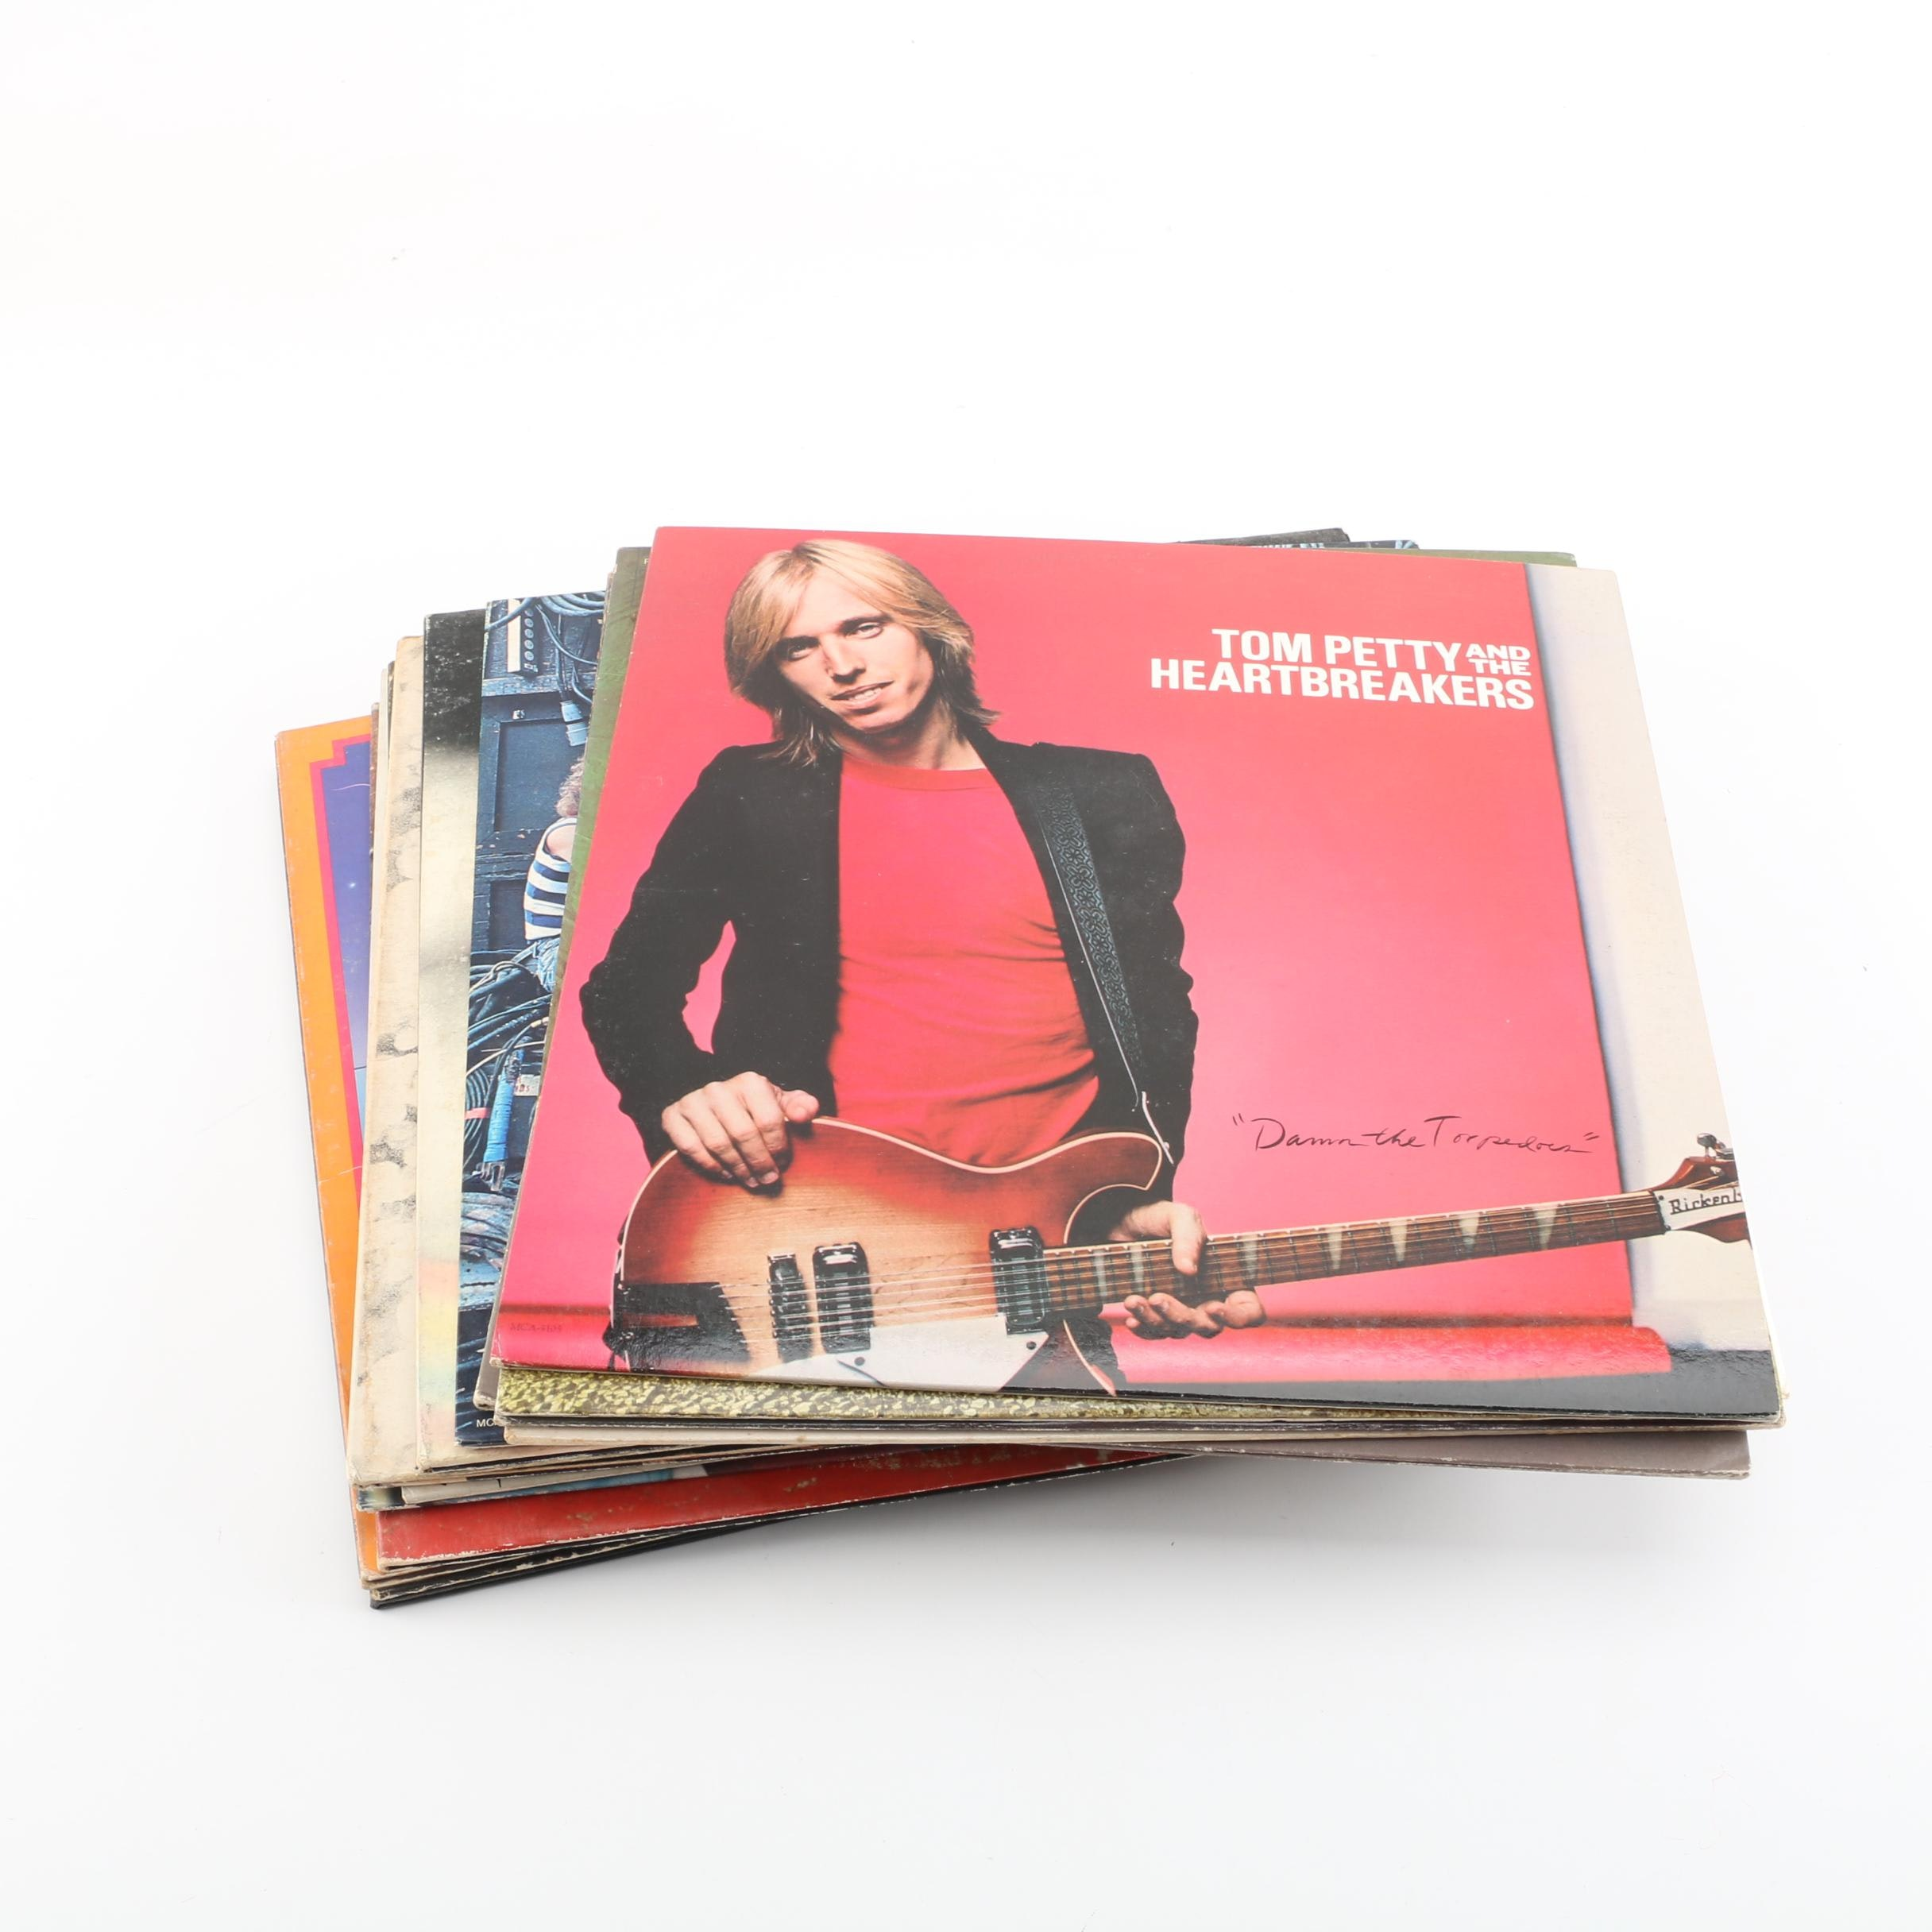 Vintage Rock Records Featuring Tom Petty and Tom Waits